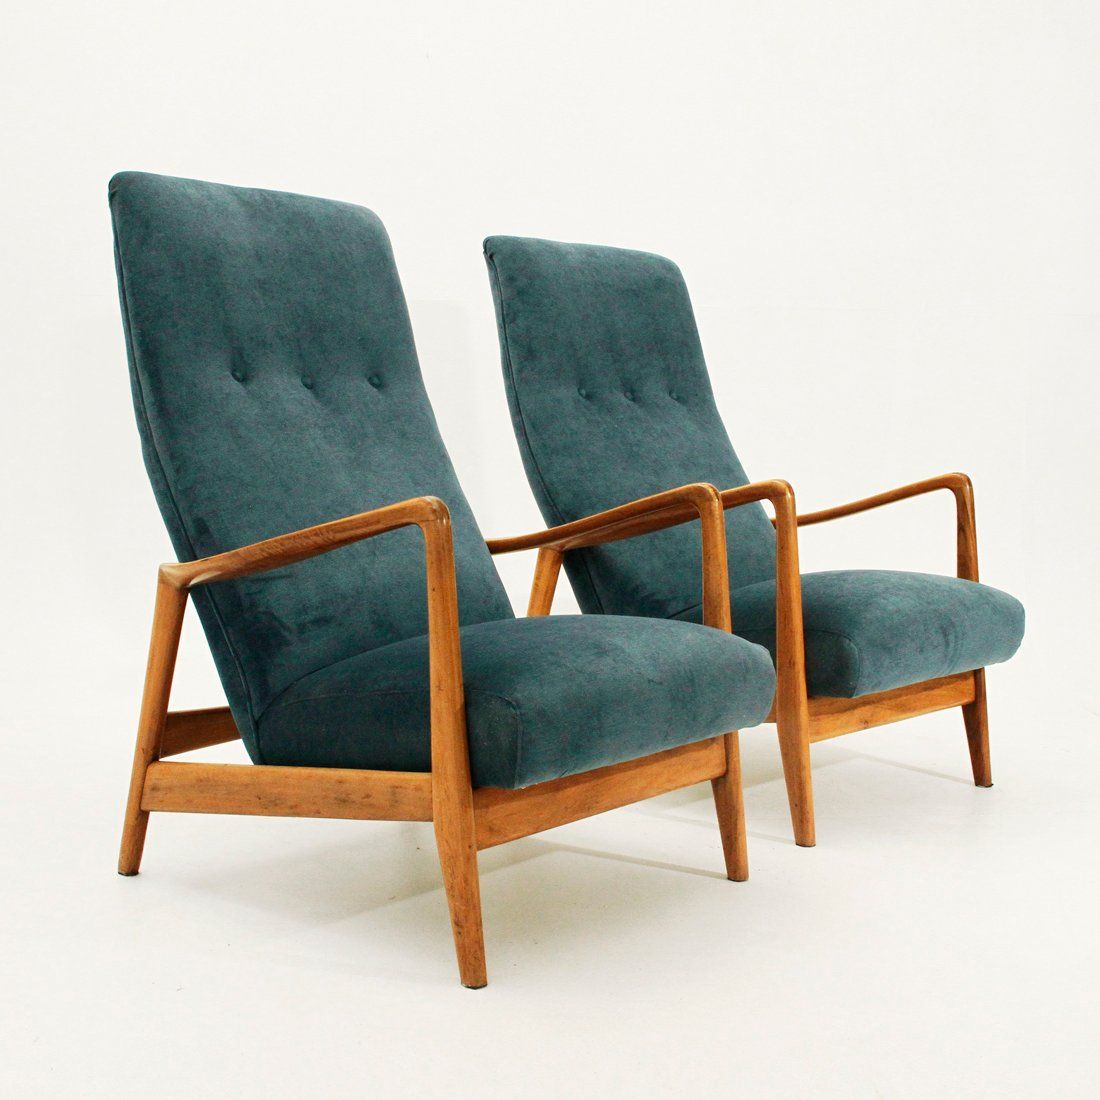 829 High Back Armchairs By Gio Ponti For Cassina 1958